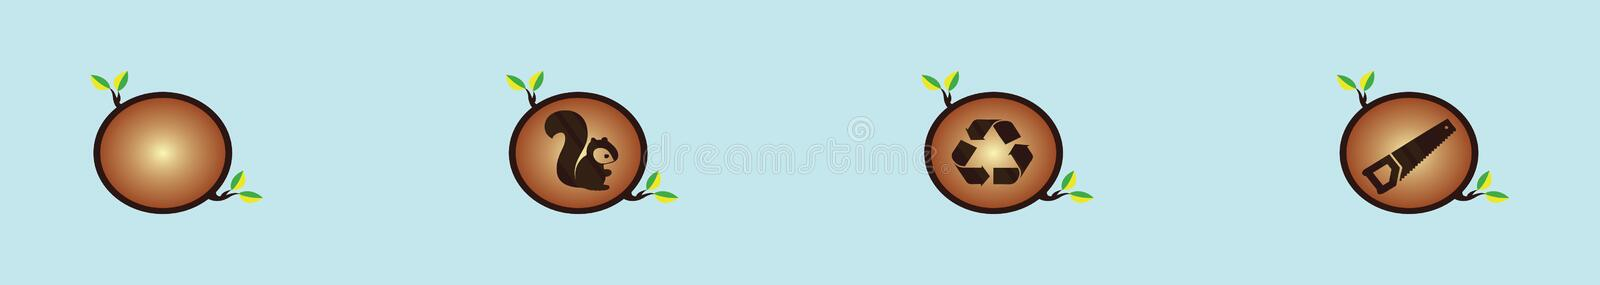 Tree Rings Isolated Stock Illustrations 817 Tree Rings Isolated Stock Illustrations Vectors Clipart Dreamstime Set funny cartoon trees and green bushes vector. dreamstime com